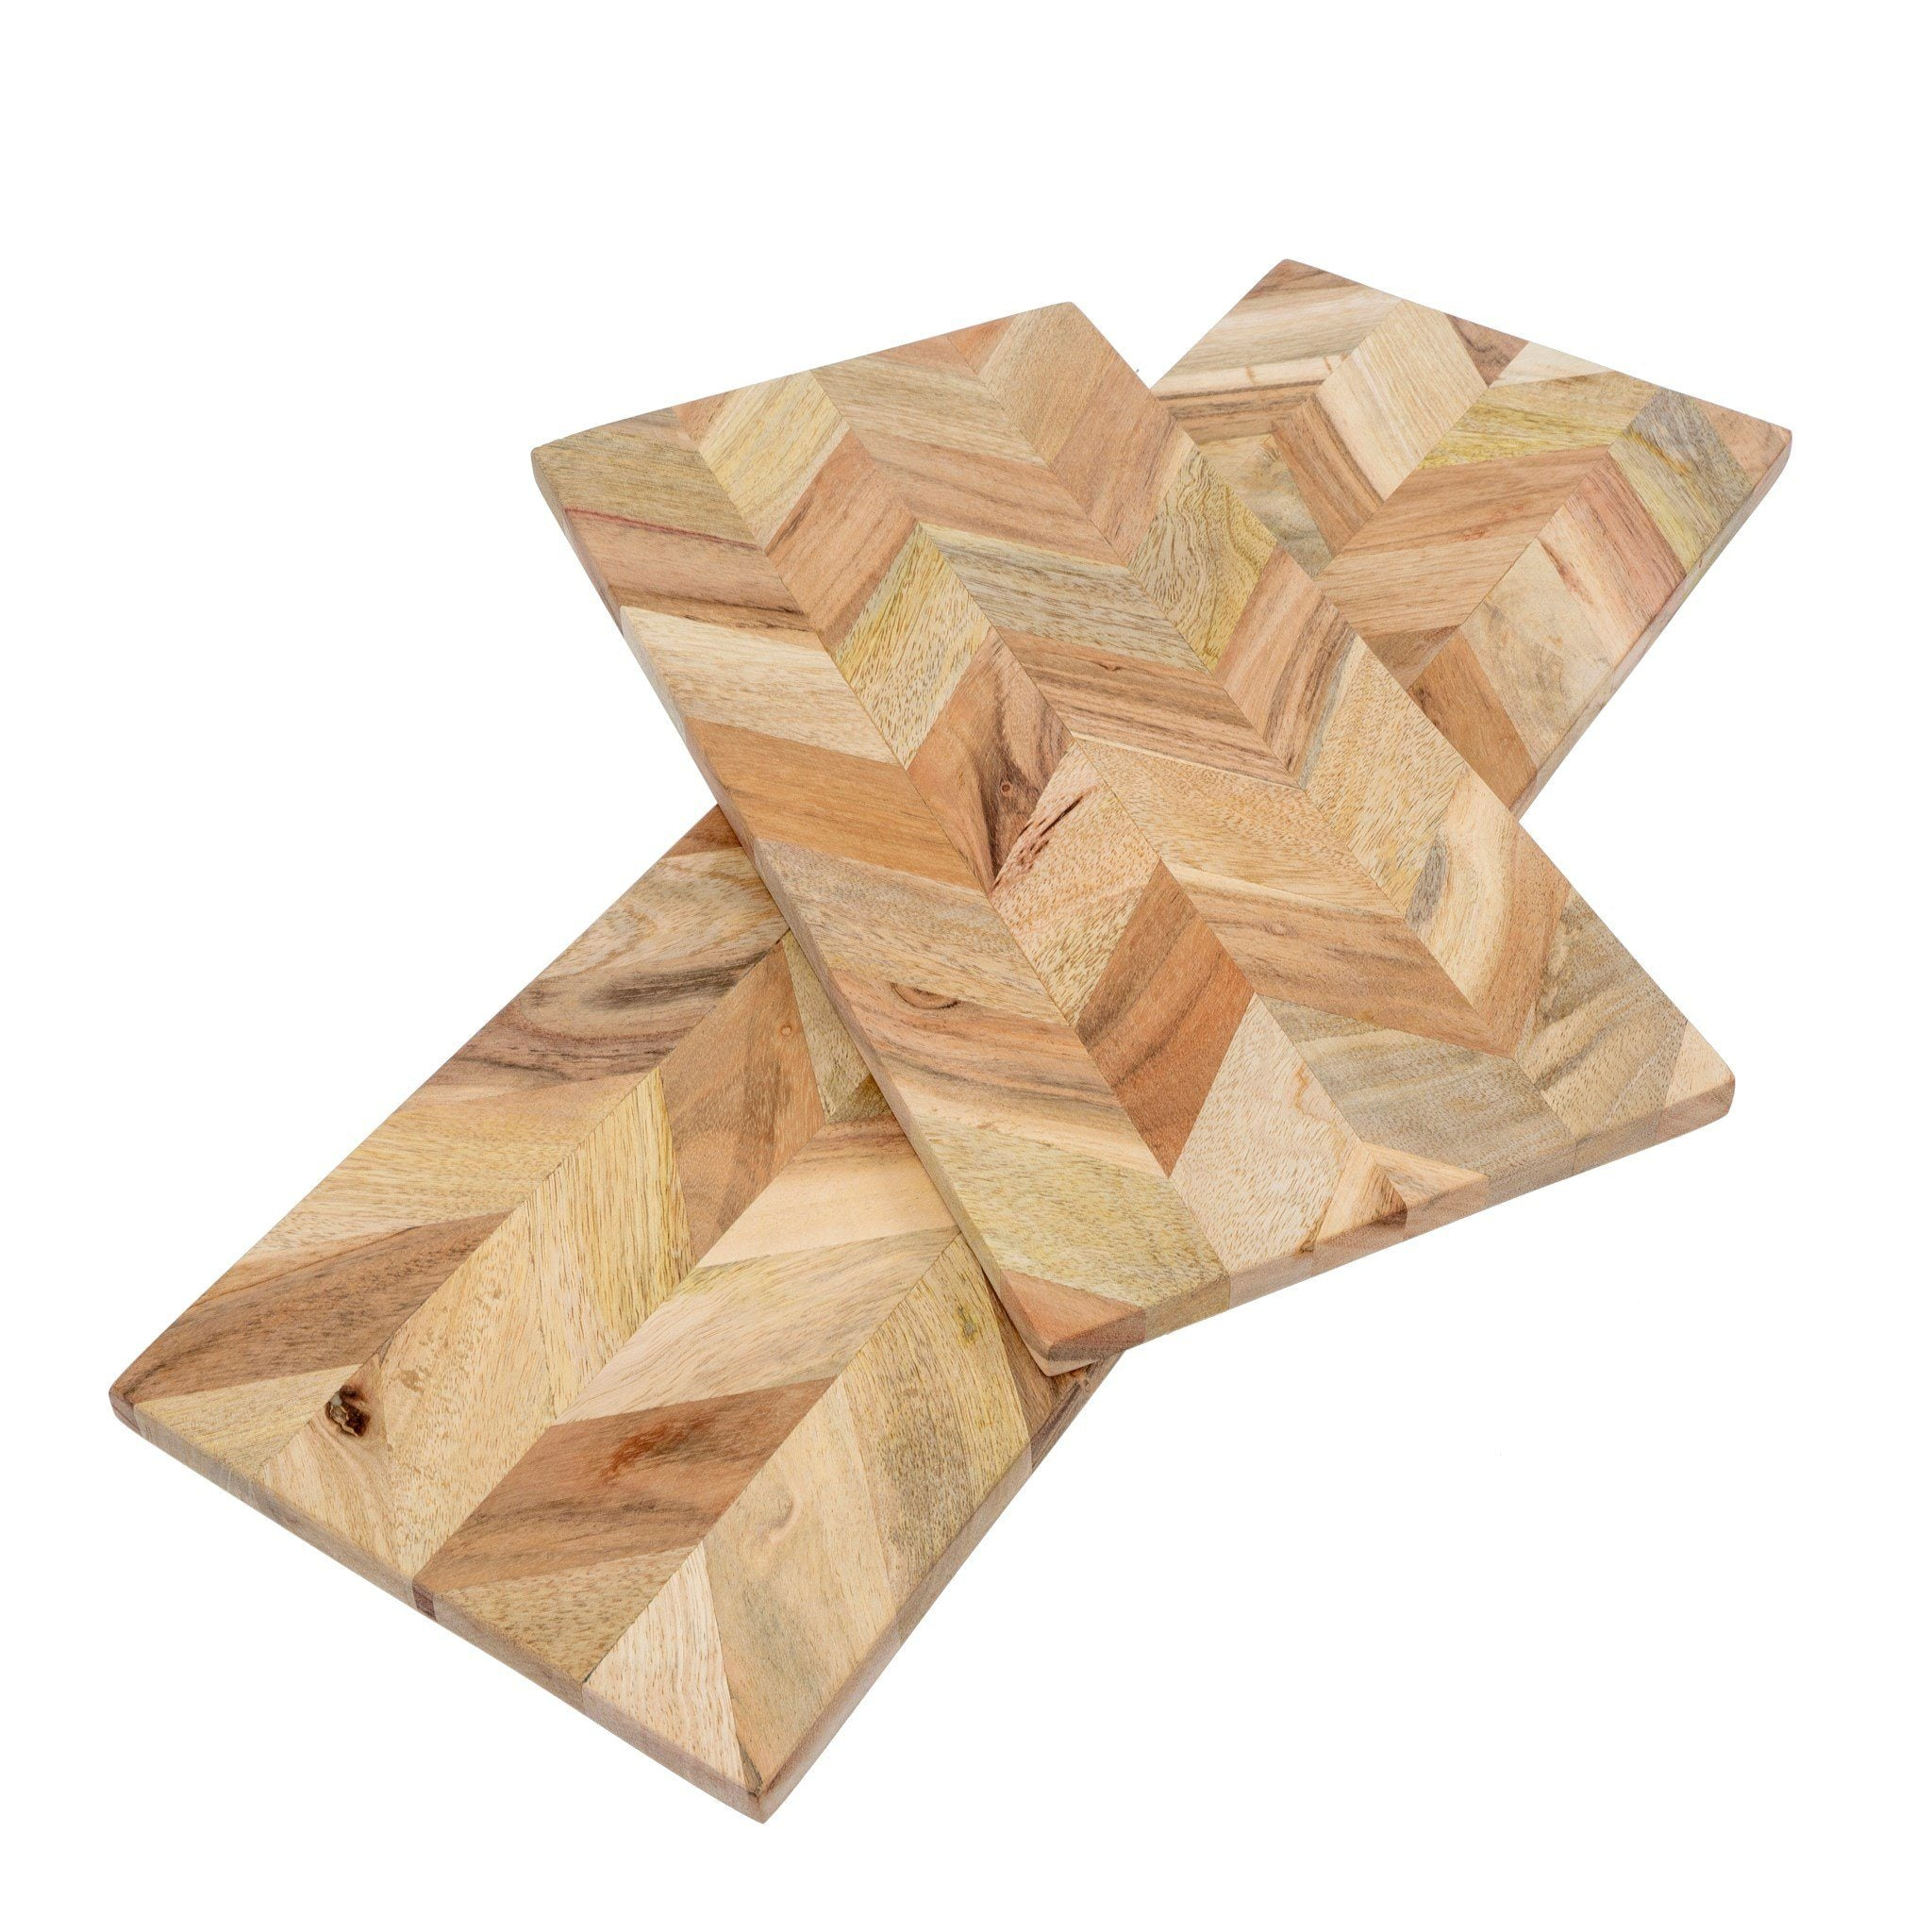 Herringbone Cheese Board Cutting Board Indaba